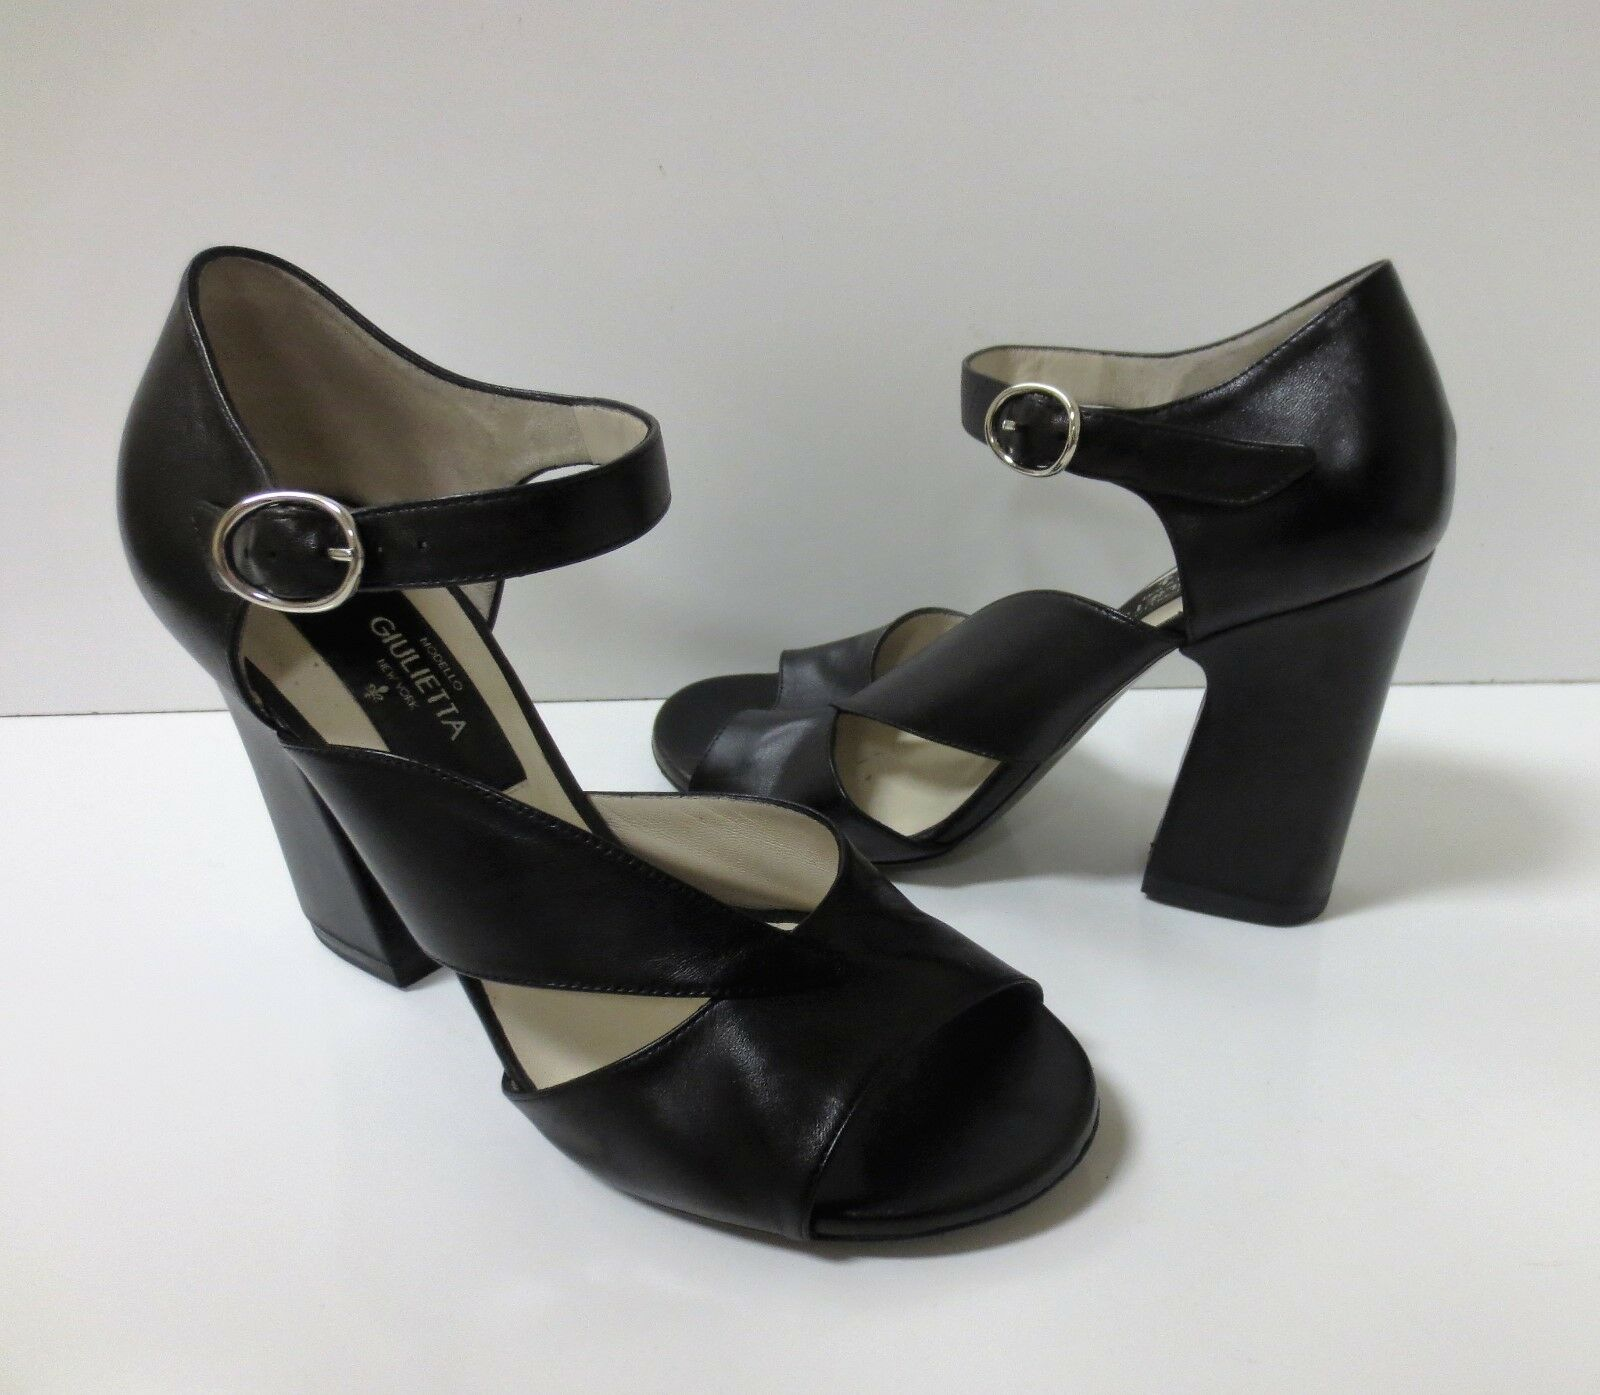 MODELLO GIULIETTA Black Leather Strappy Sandals High Heels shoes 37 MINT COND